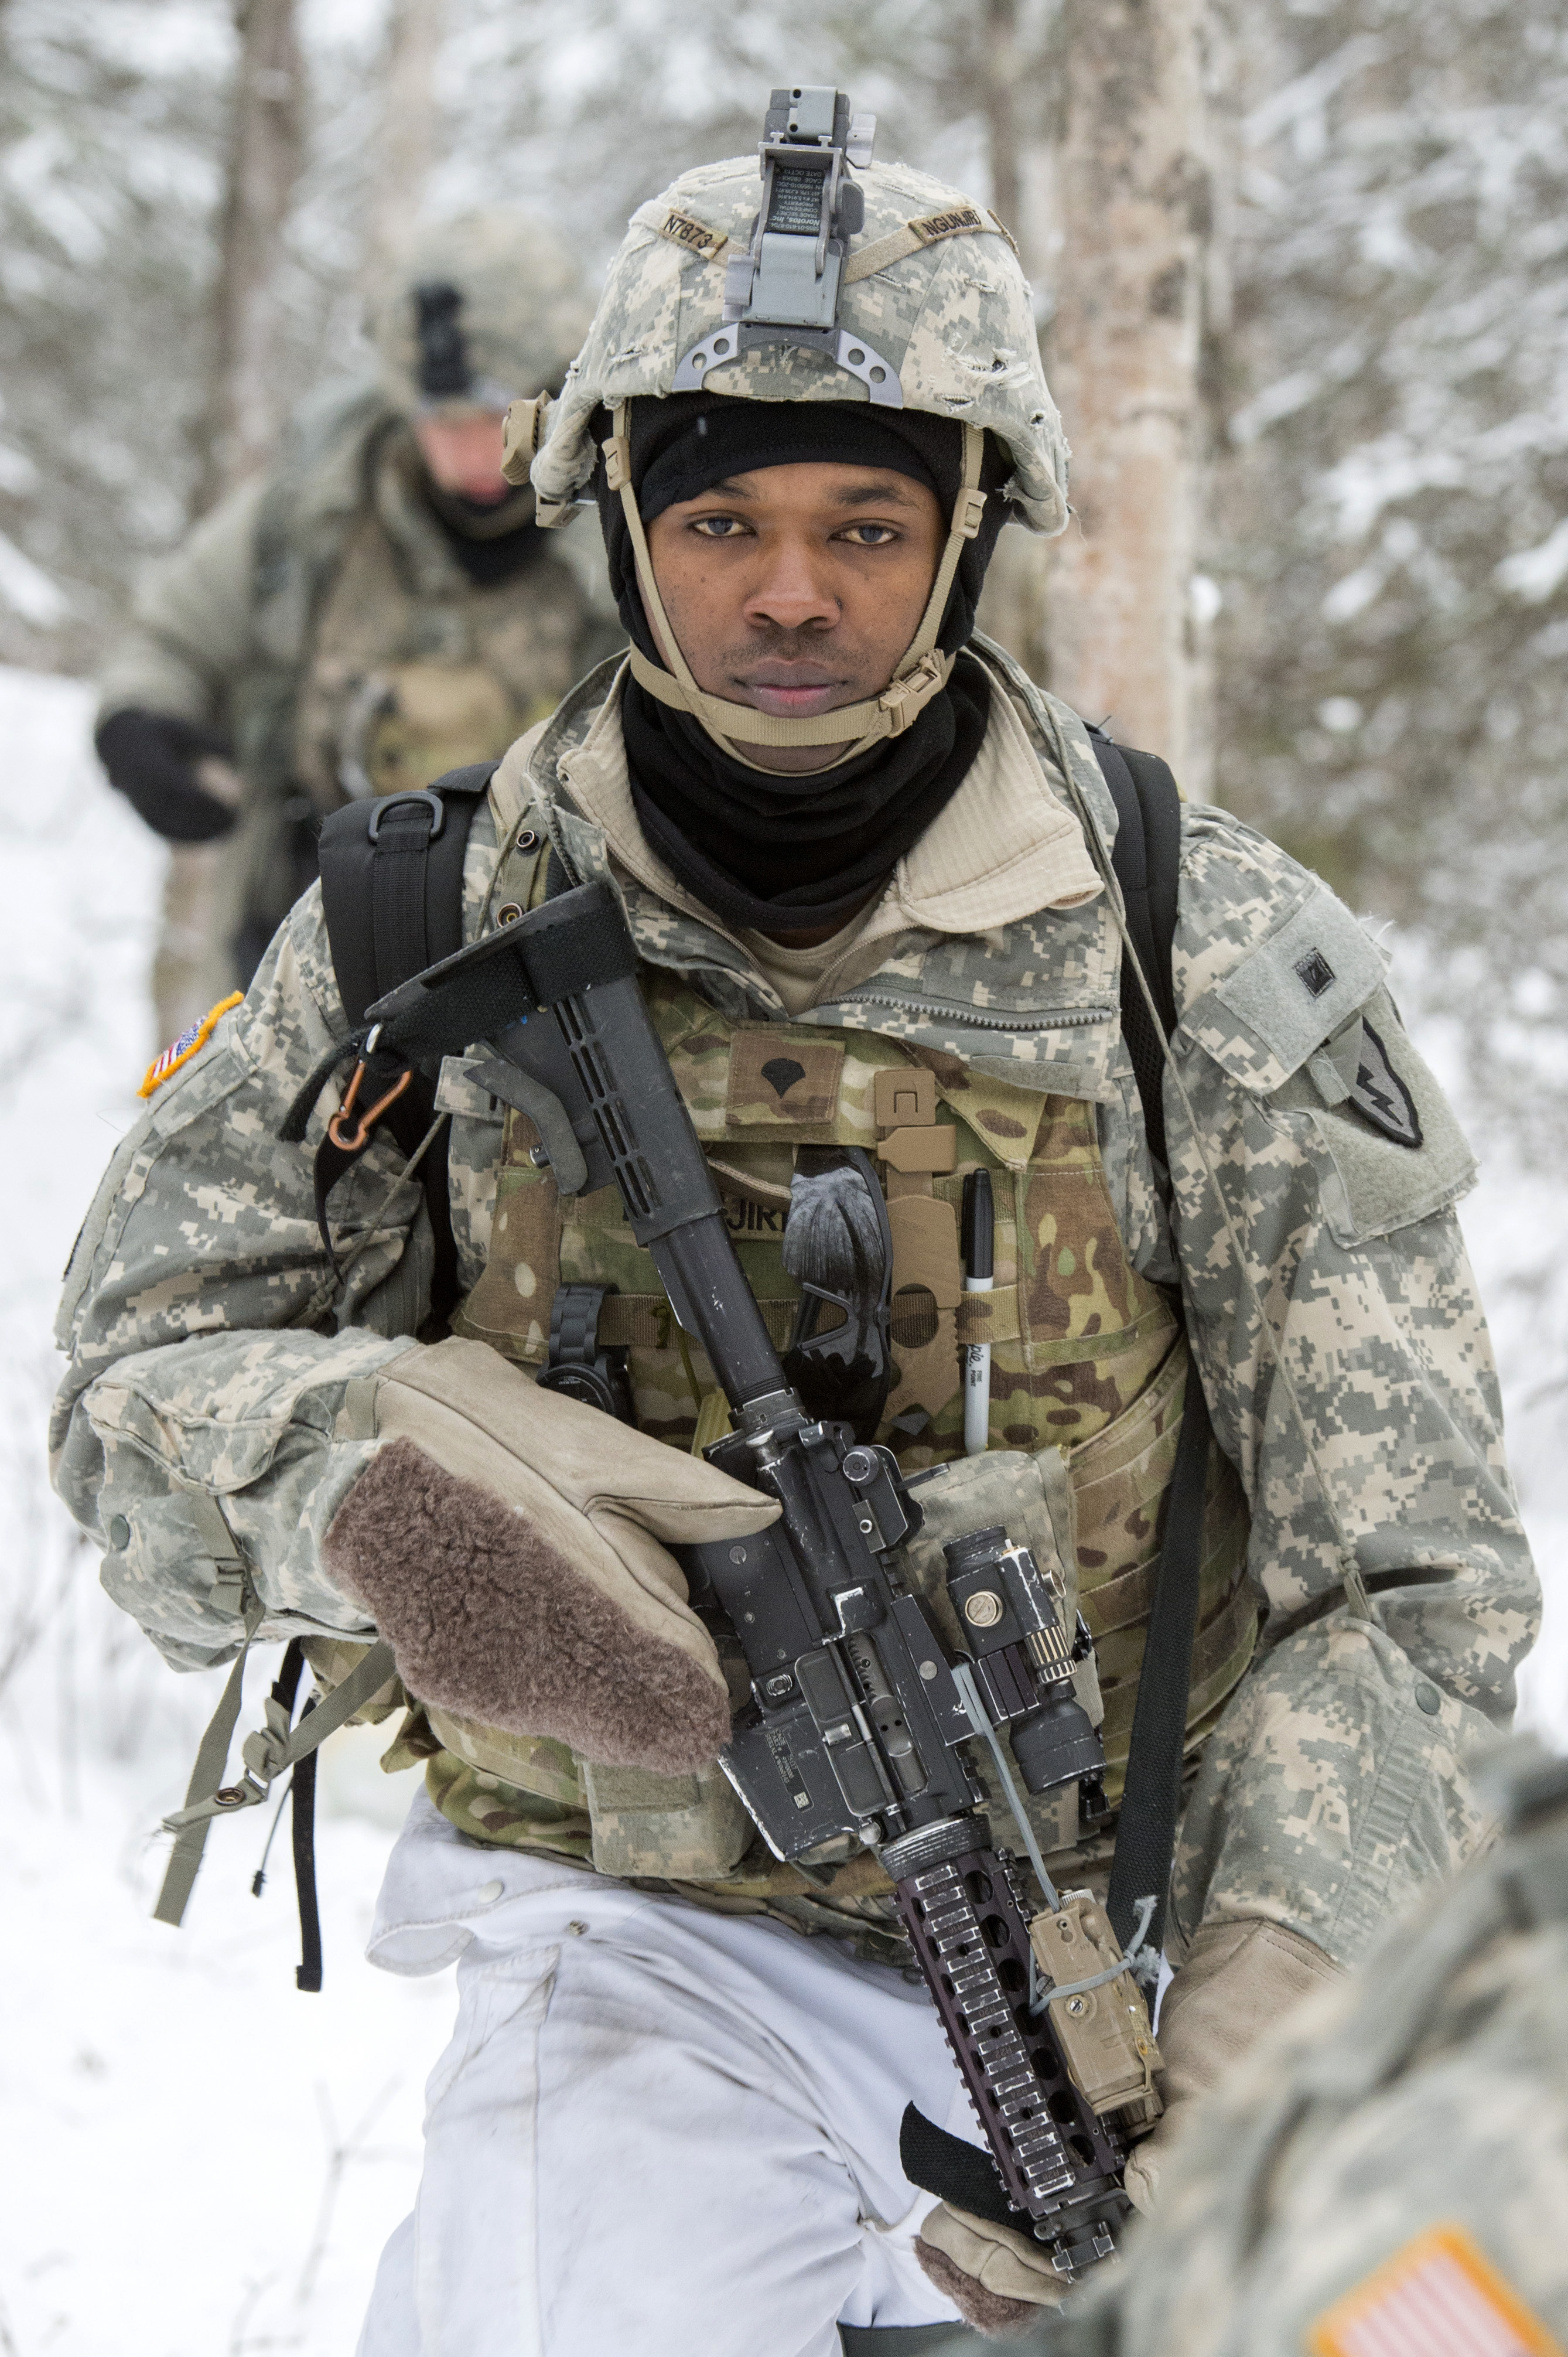 Spc. Moses Ngunjiri marches to the next objective during Operation Punchbowl at Joint Base Elmendorf-Richardson, Alaska, Feb. 10, 2018. (Alejandro Peña/Air Force)